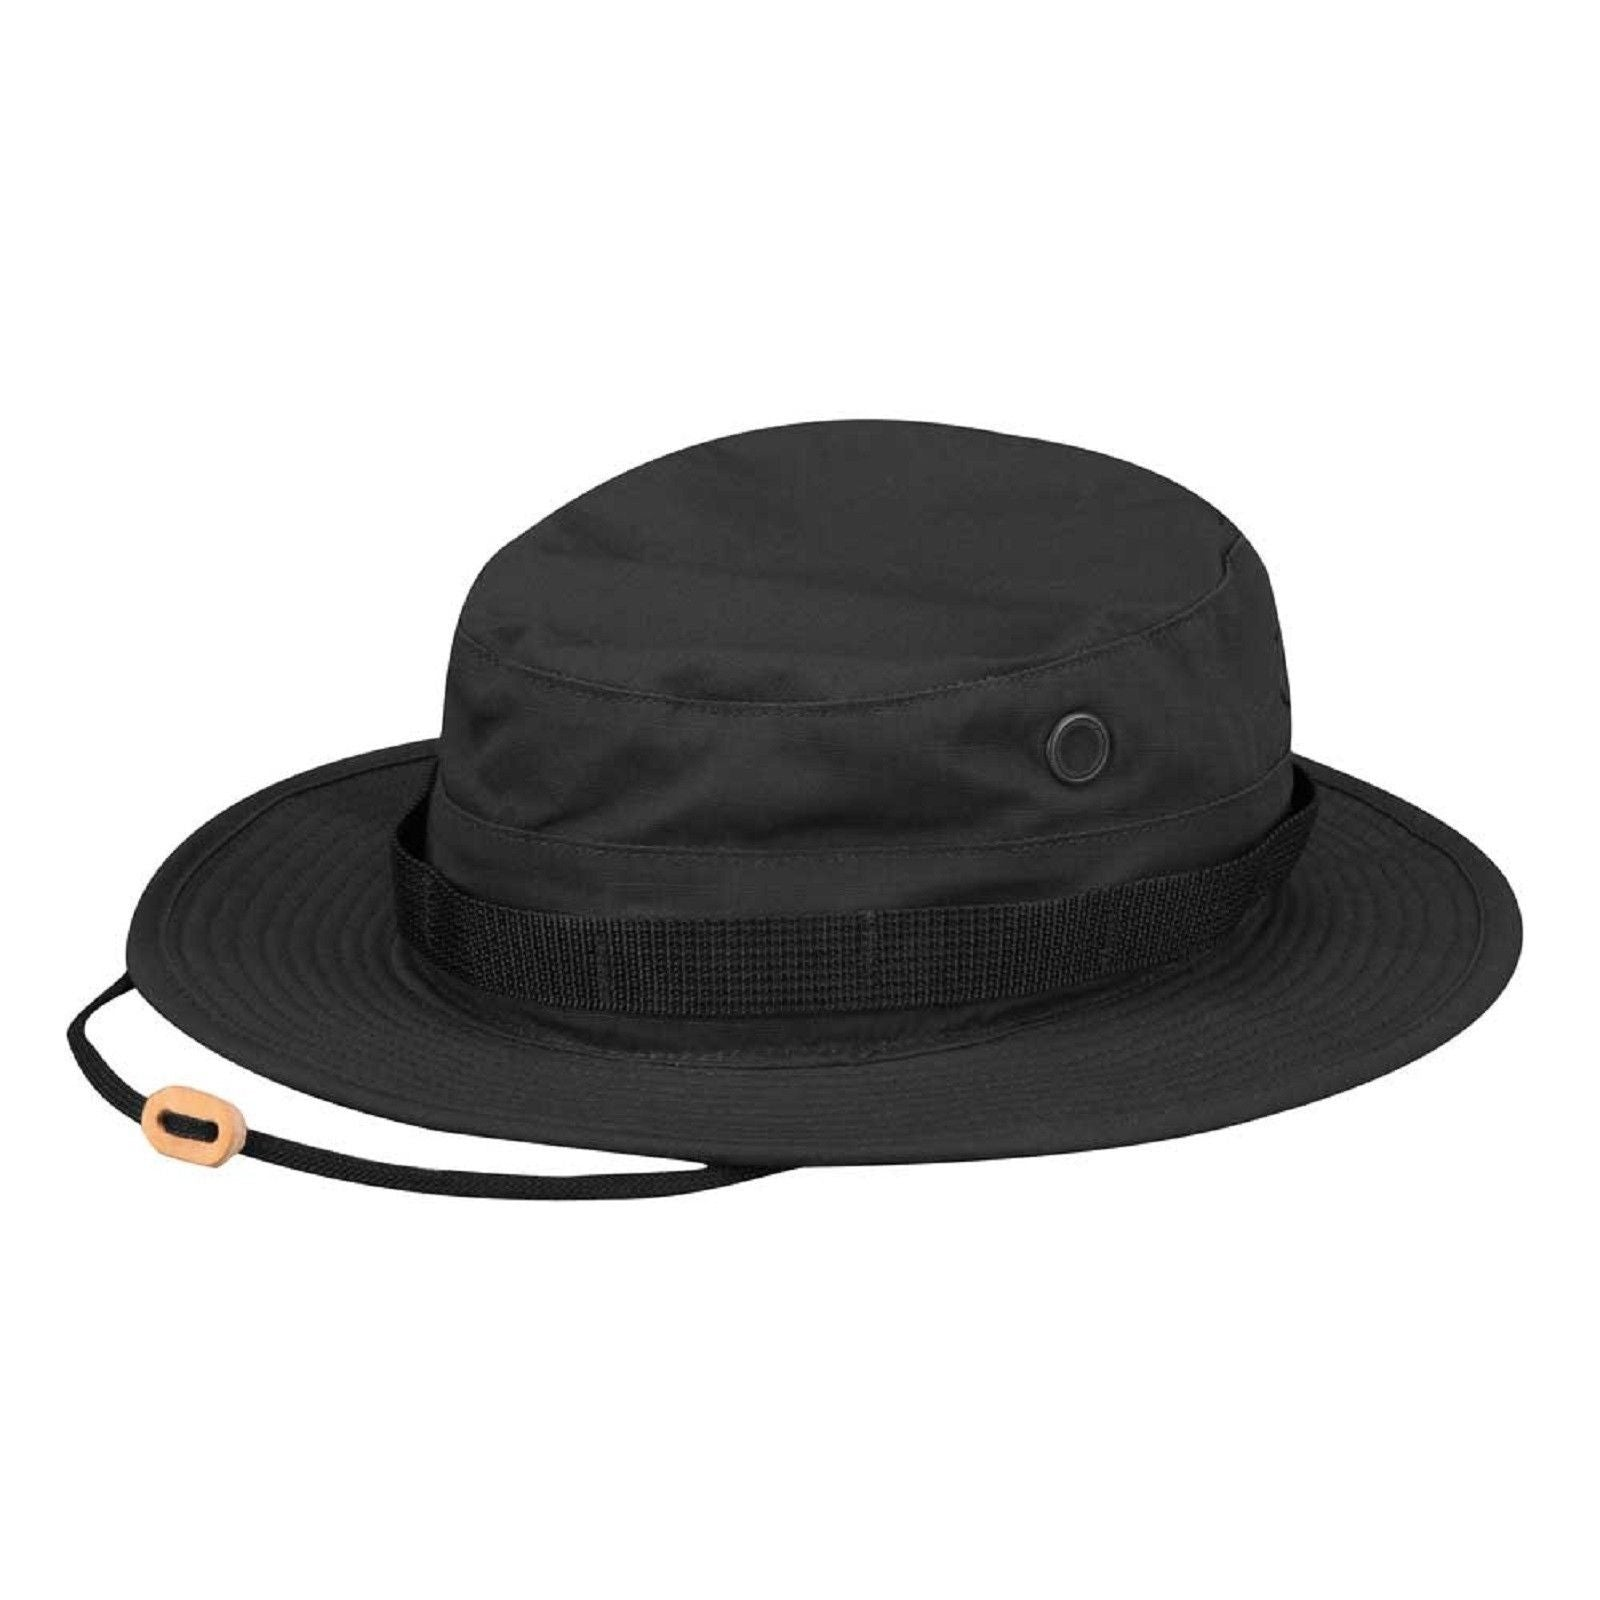 Propper Boonie Sun Hat 100% Cotton Tactical Bucket Hat